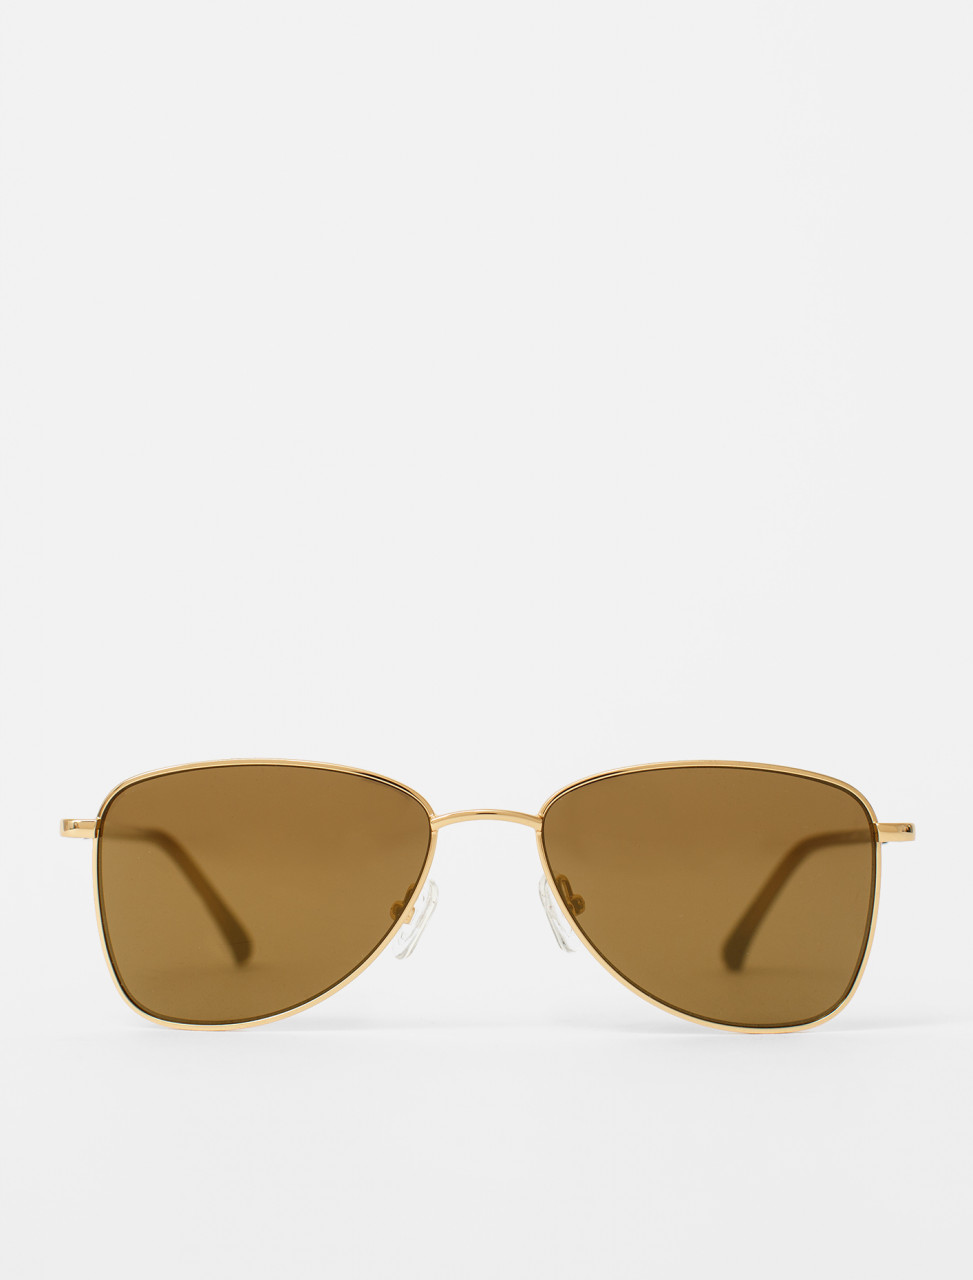 Steel Frame Sunglasses in Gold